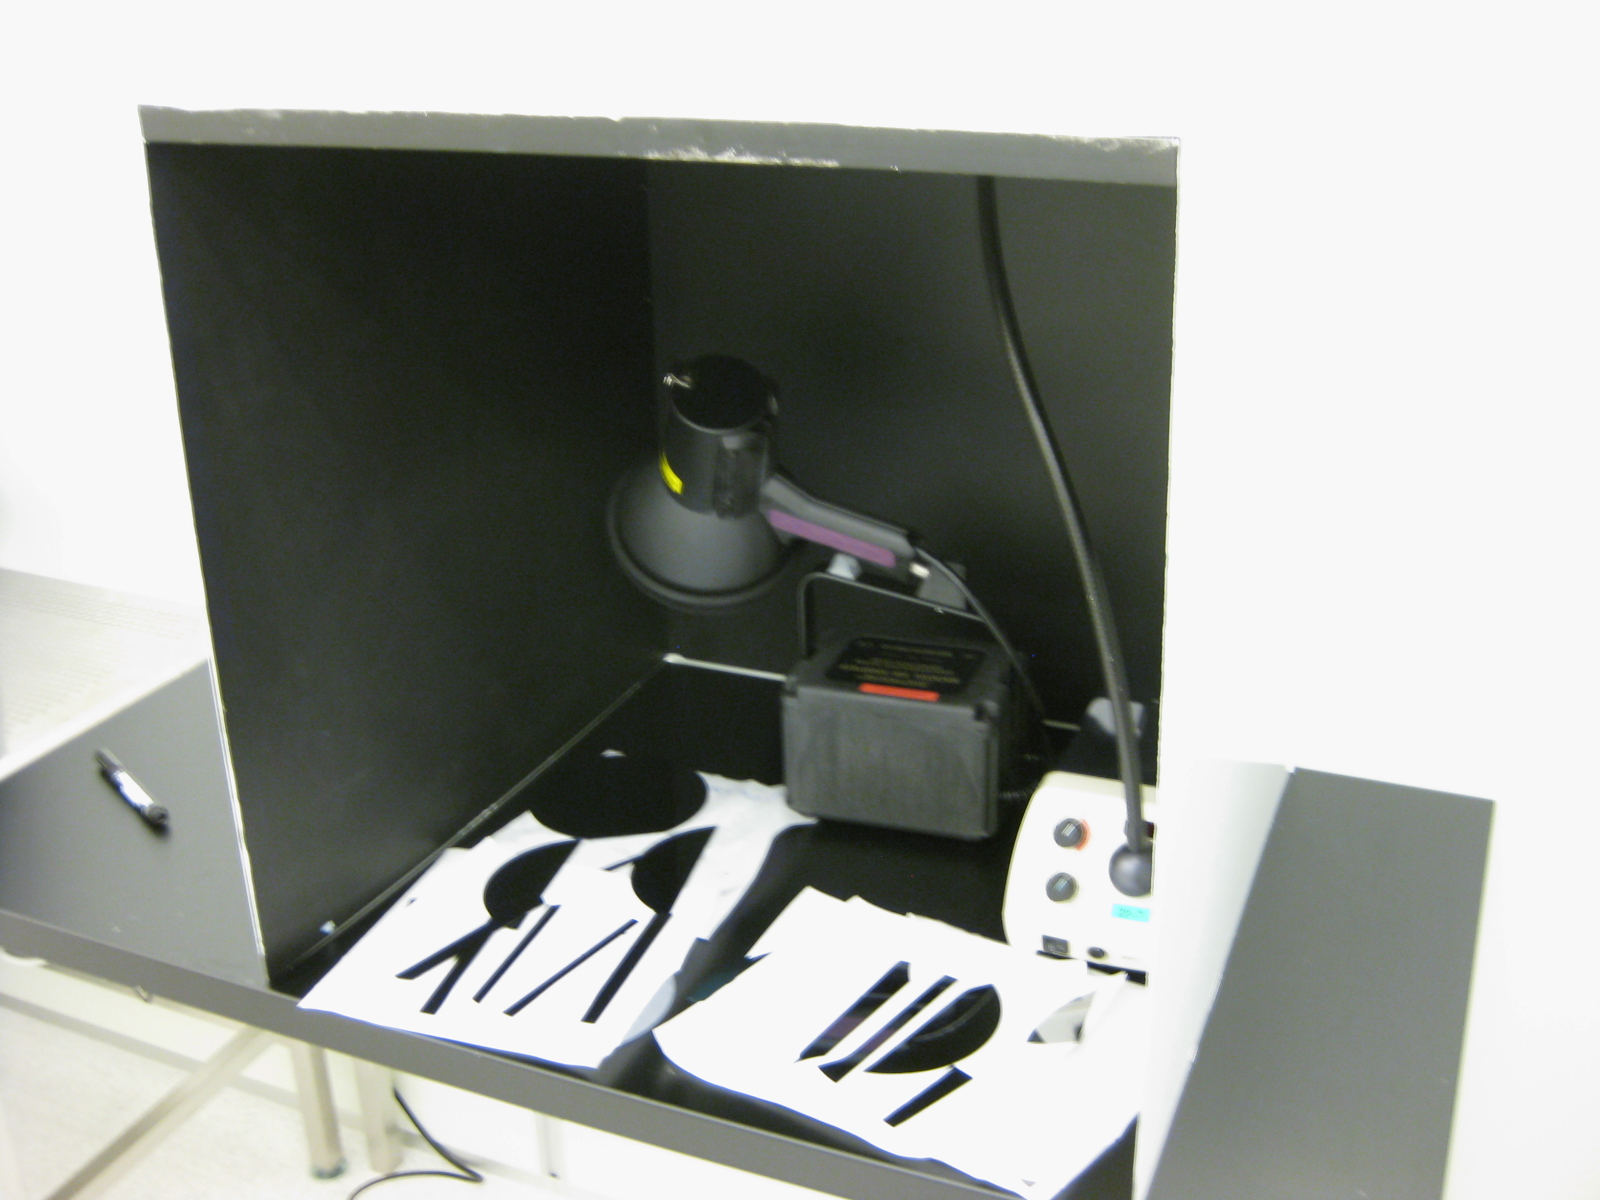 Picture of UV-Lamp Visual Inspection